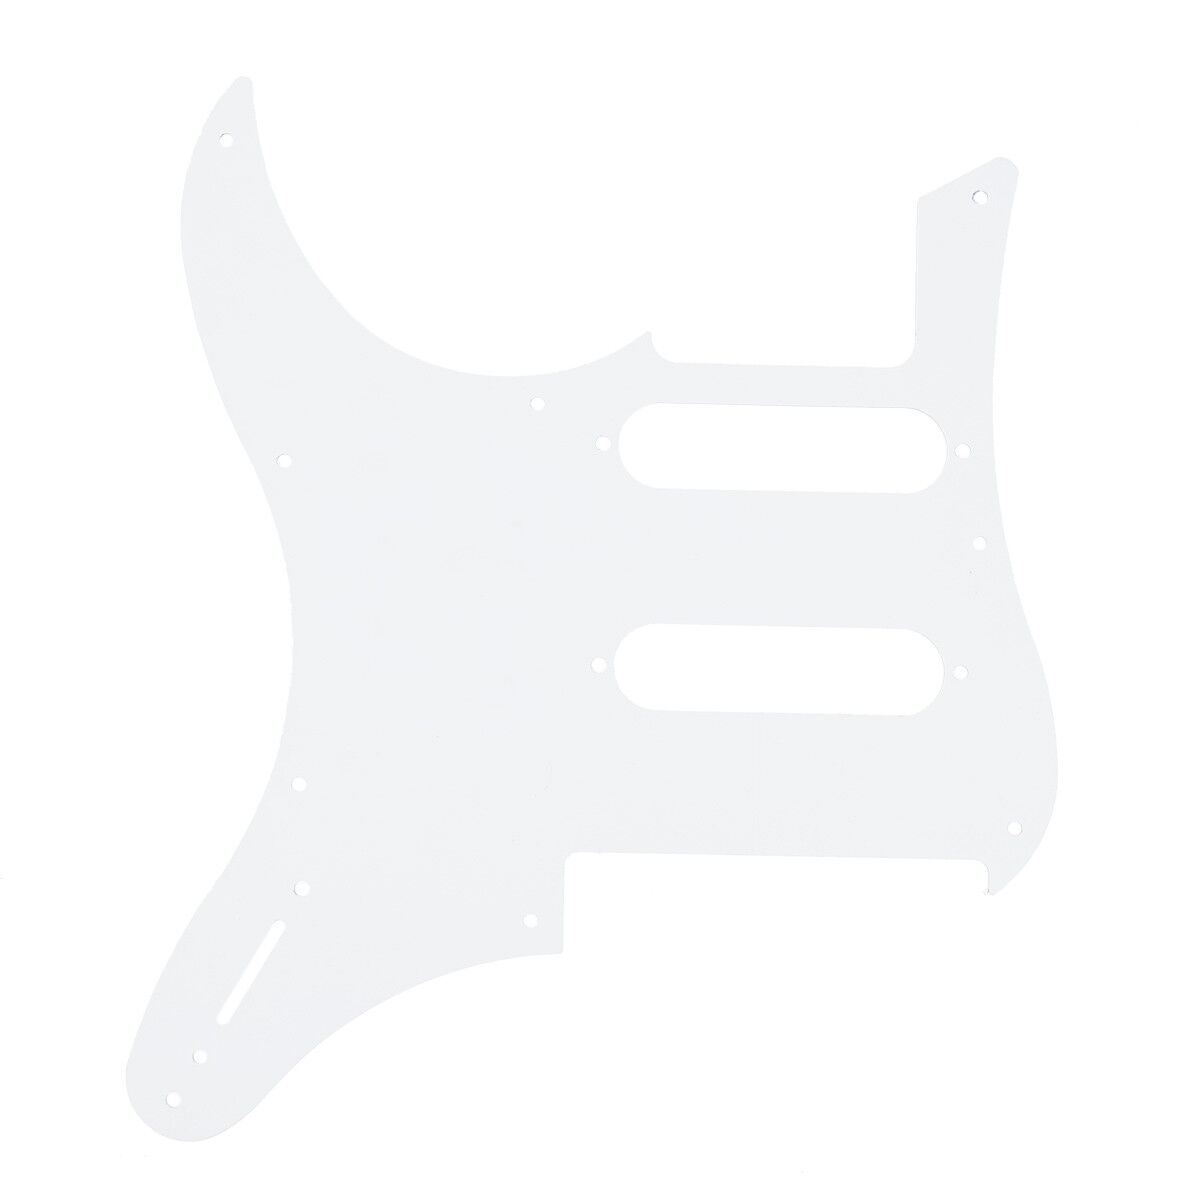 yamaha pacifica 112v wiring diagram 1995 g14 white pearl guitar pickguard for